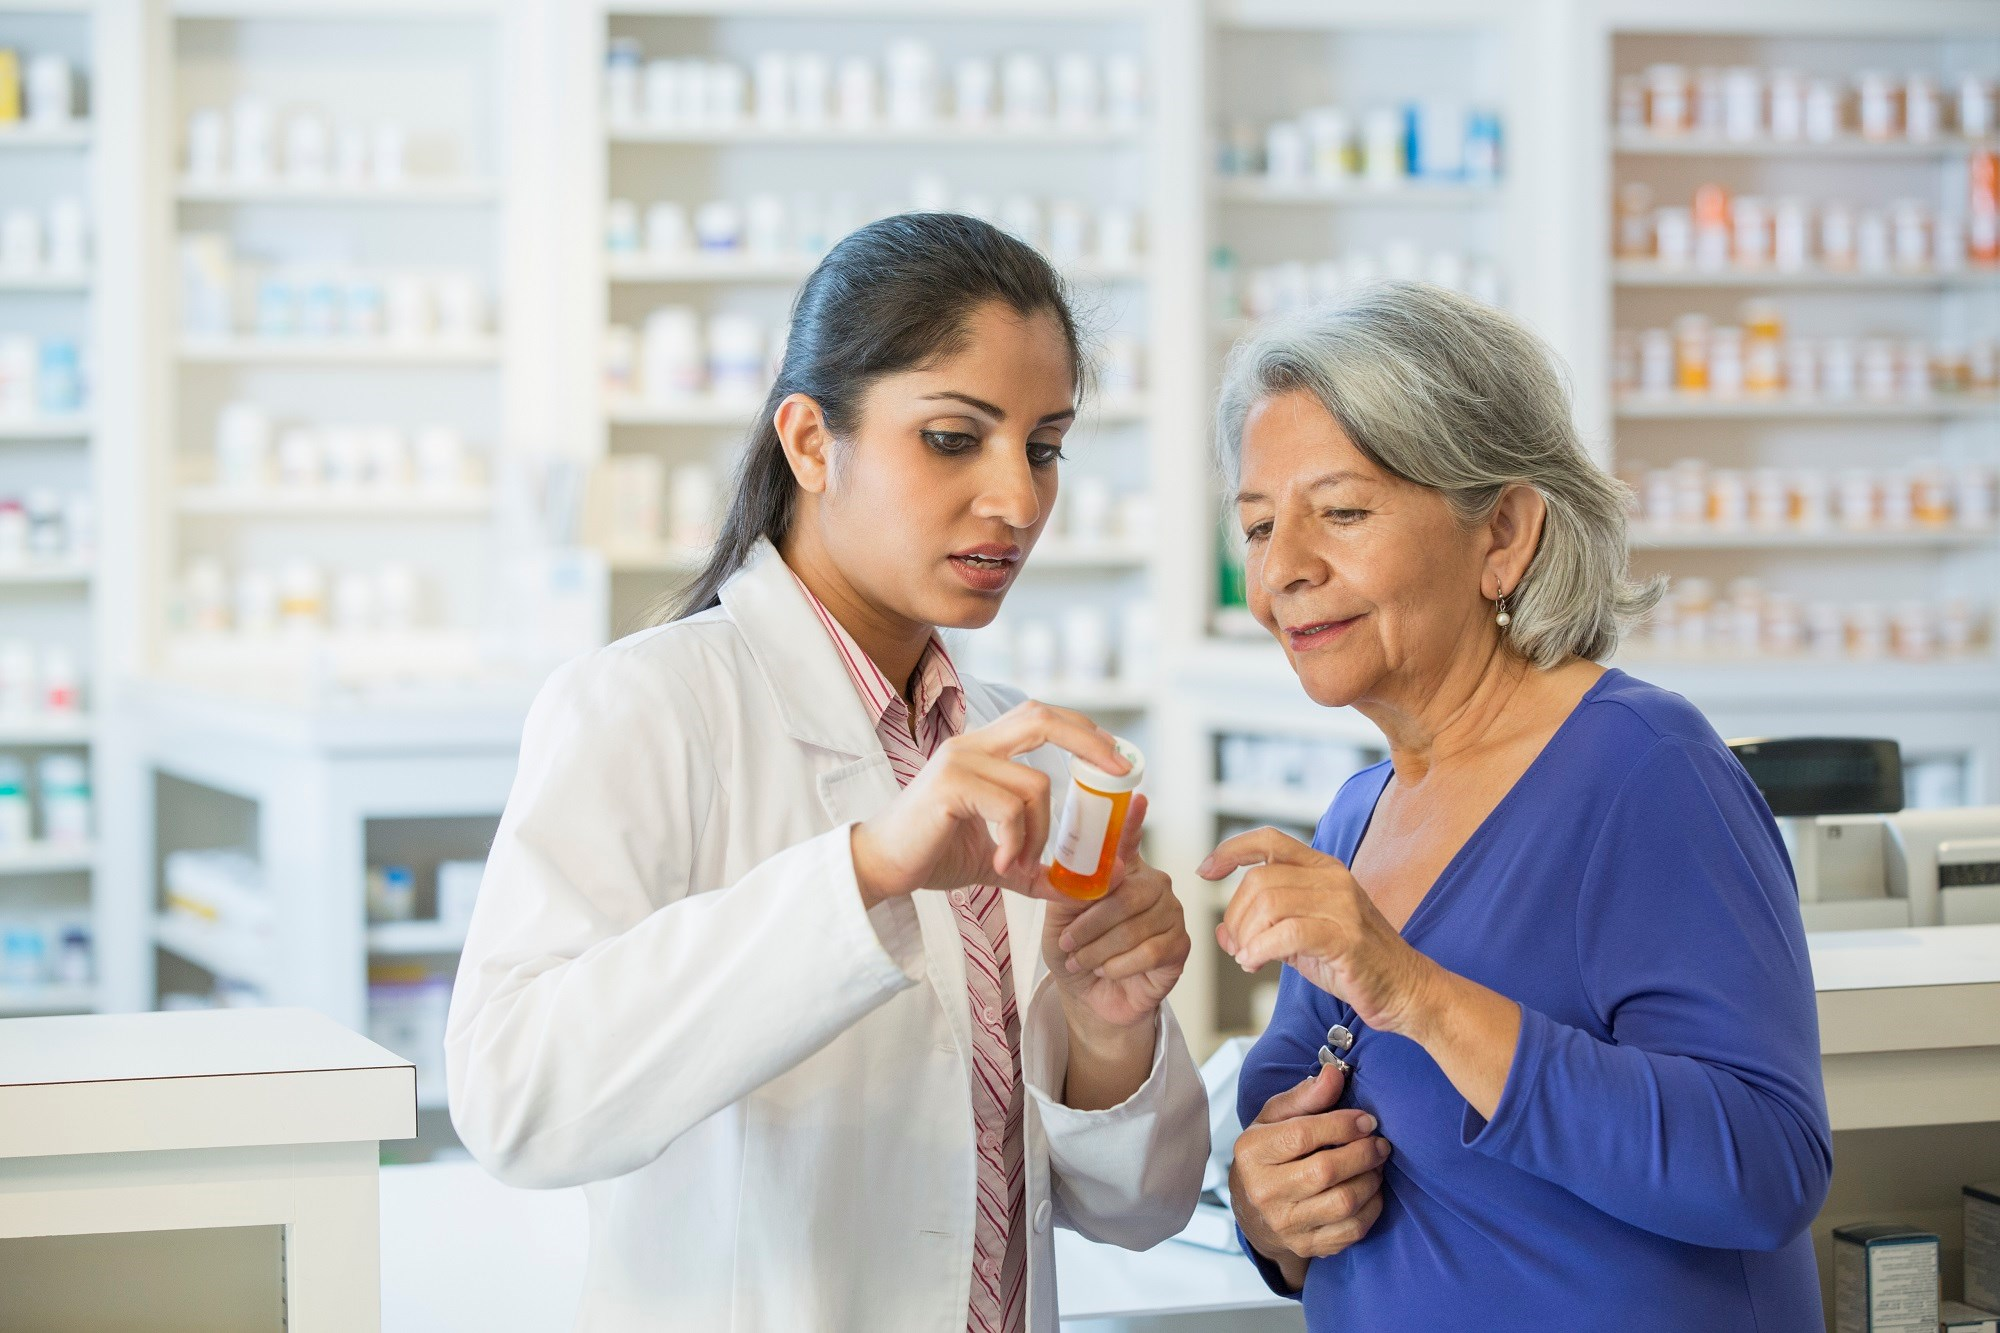 Pharmacist-Led Medication Adherence Intervention Improves Gout Outcomes